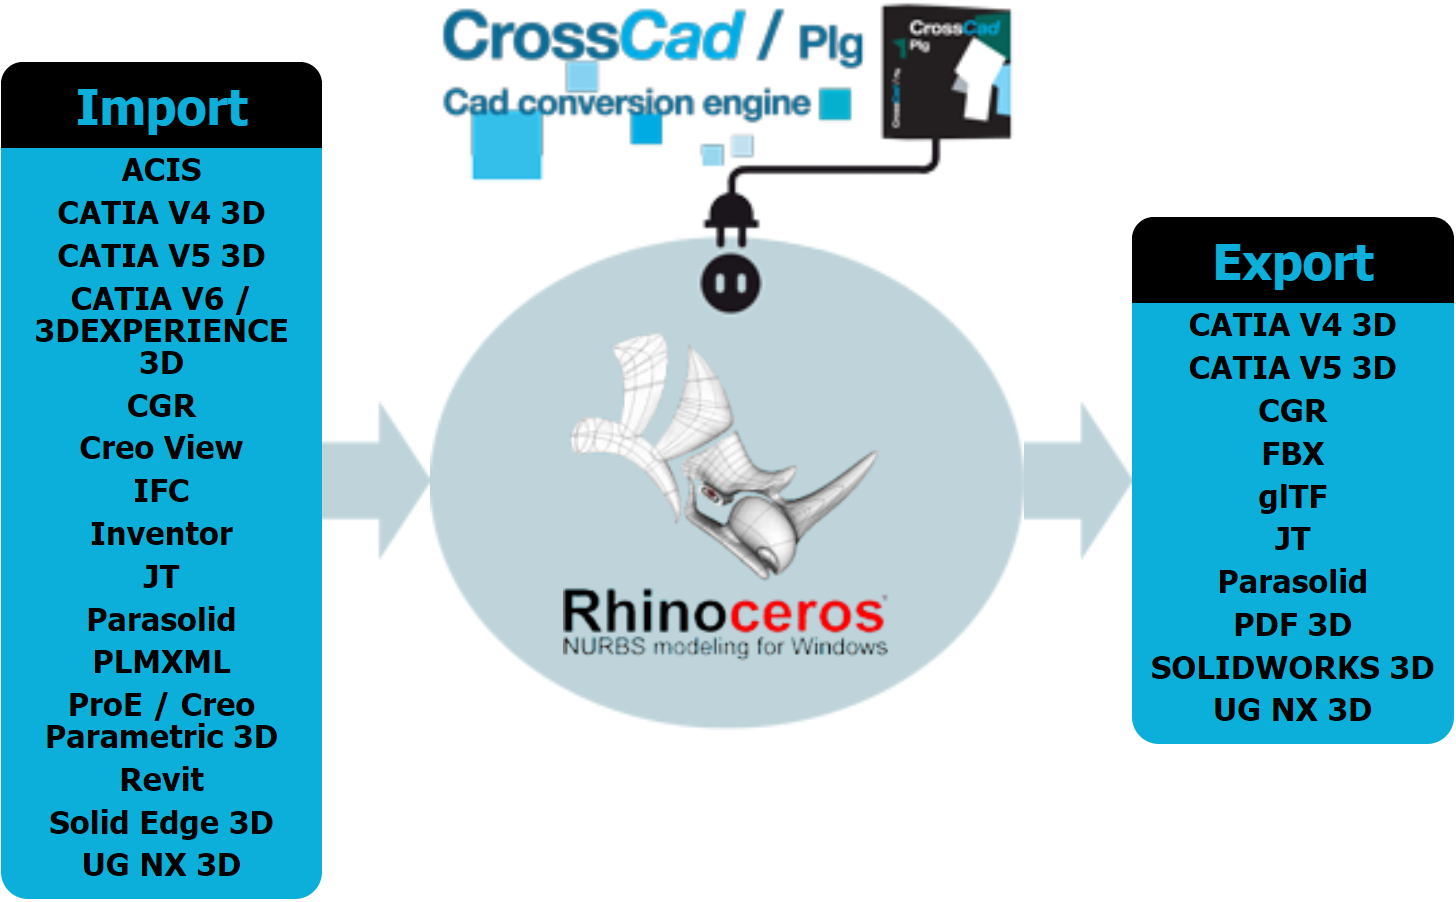 A prolific confinement … for Rhino 3D plug-ins